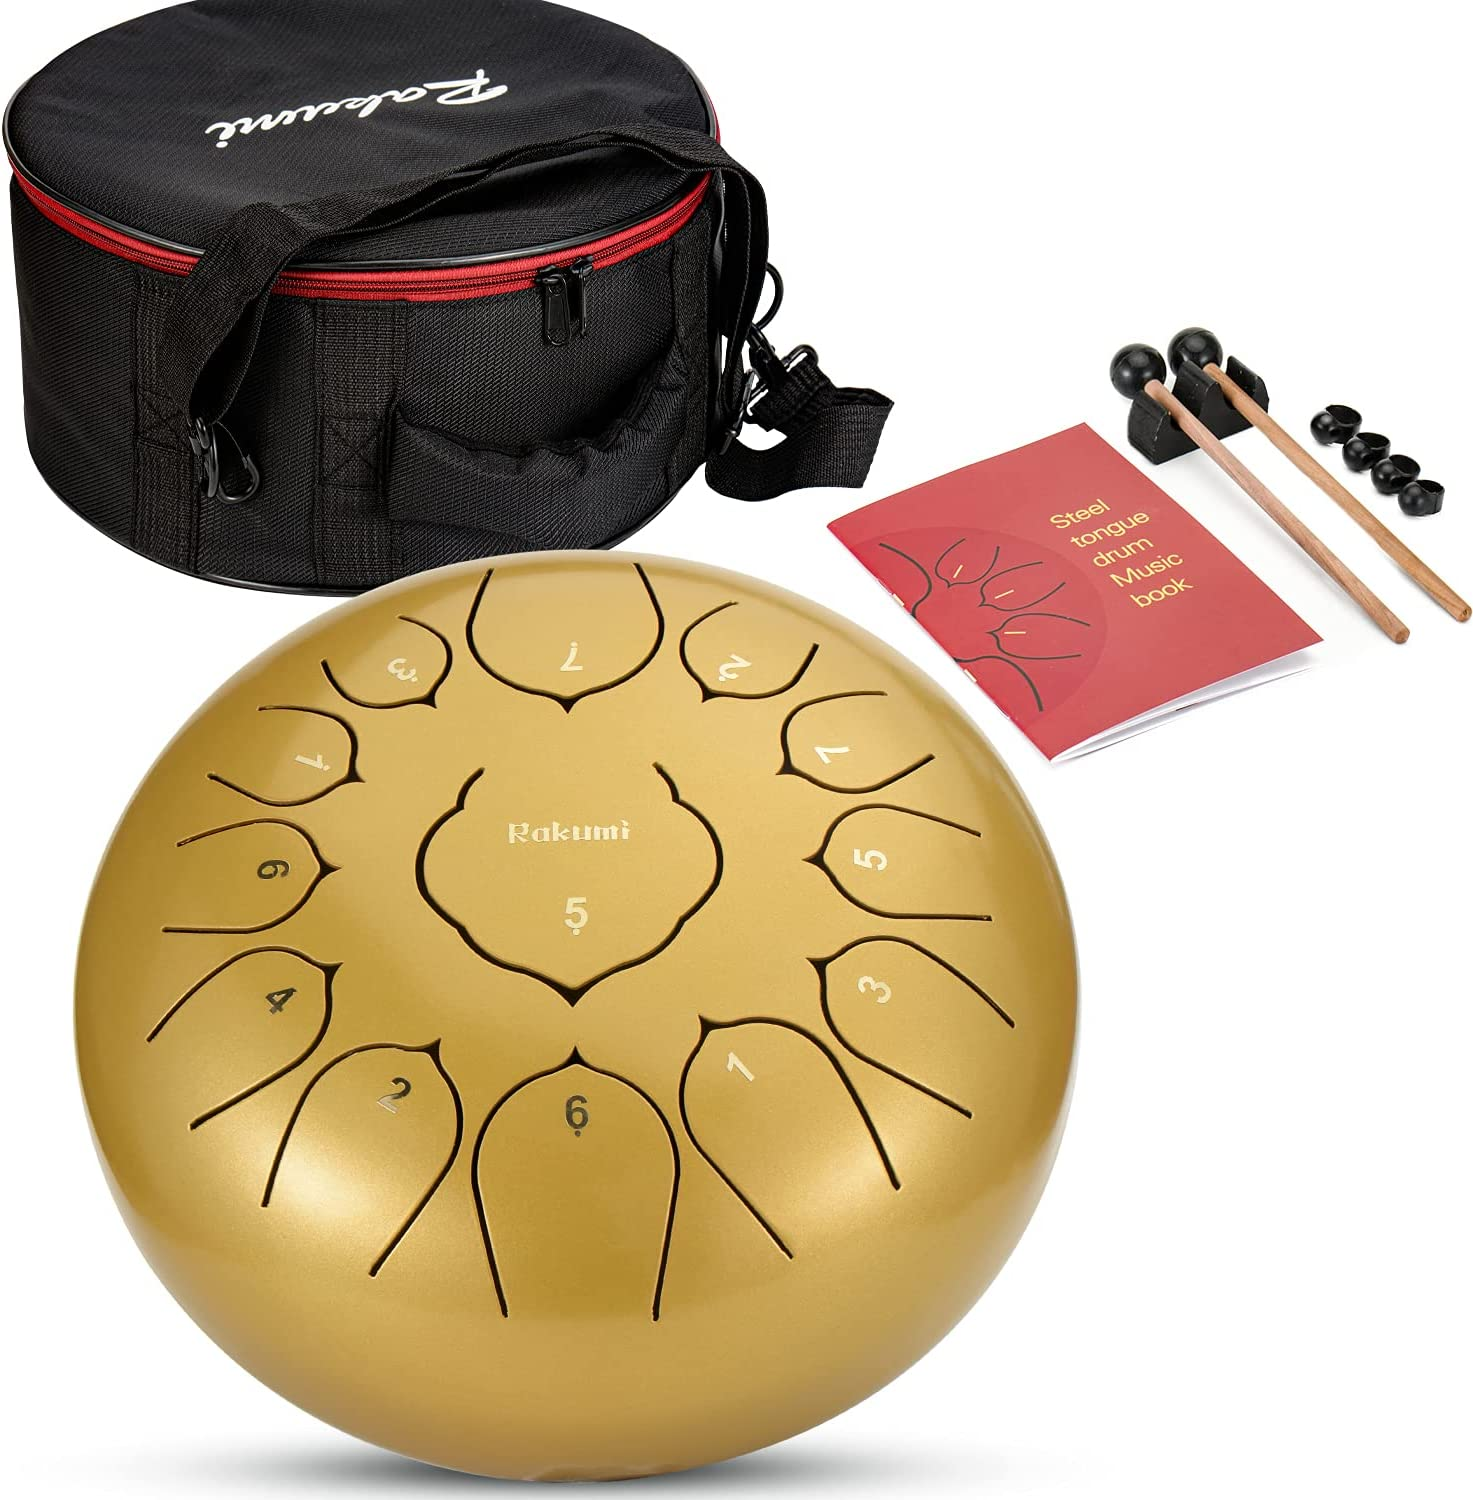 Steel Tongue Drum-12 Inch Cheap mail order specialty store 13 Percussion Ha Lotus Instrument Note 25% OFF